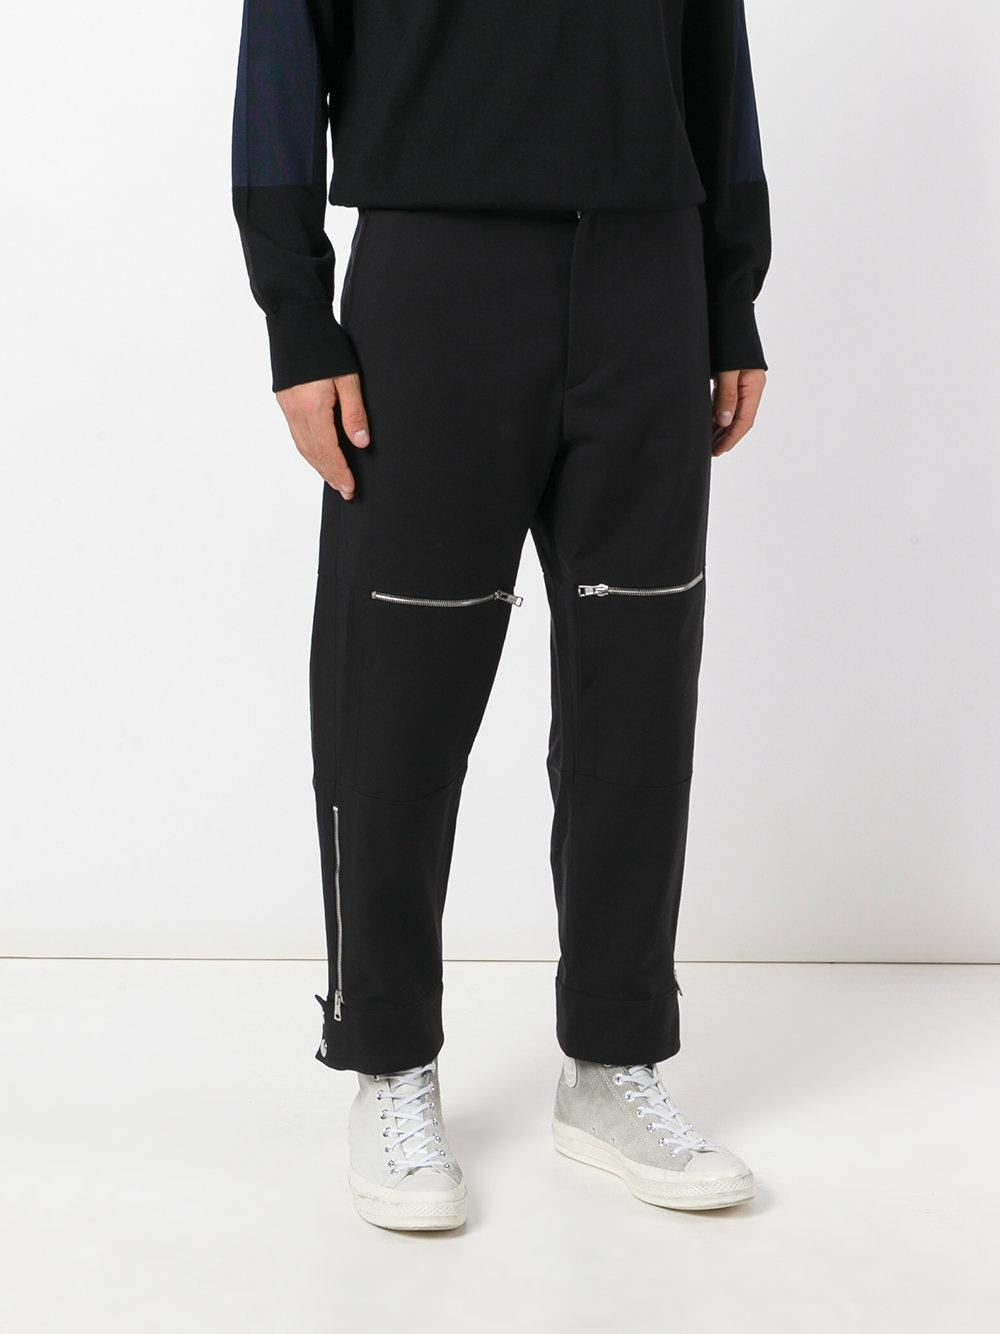 Cheap Sale Supply Cheap Best zip knee trousers - Black Stella McCartney Free Shipping Cheapest Price Outlet With Paypal Order Online 48nuUfA